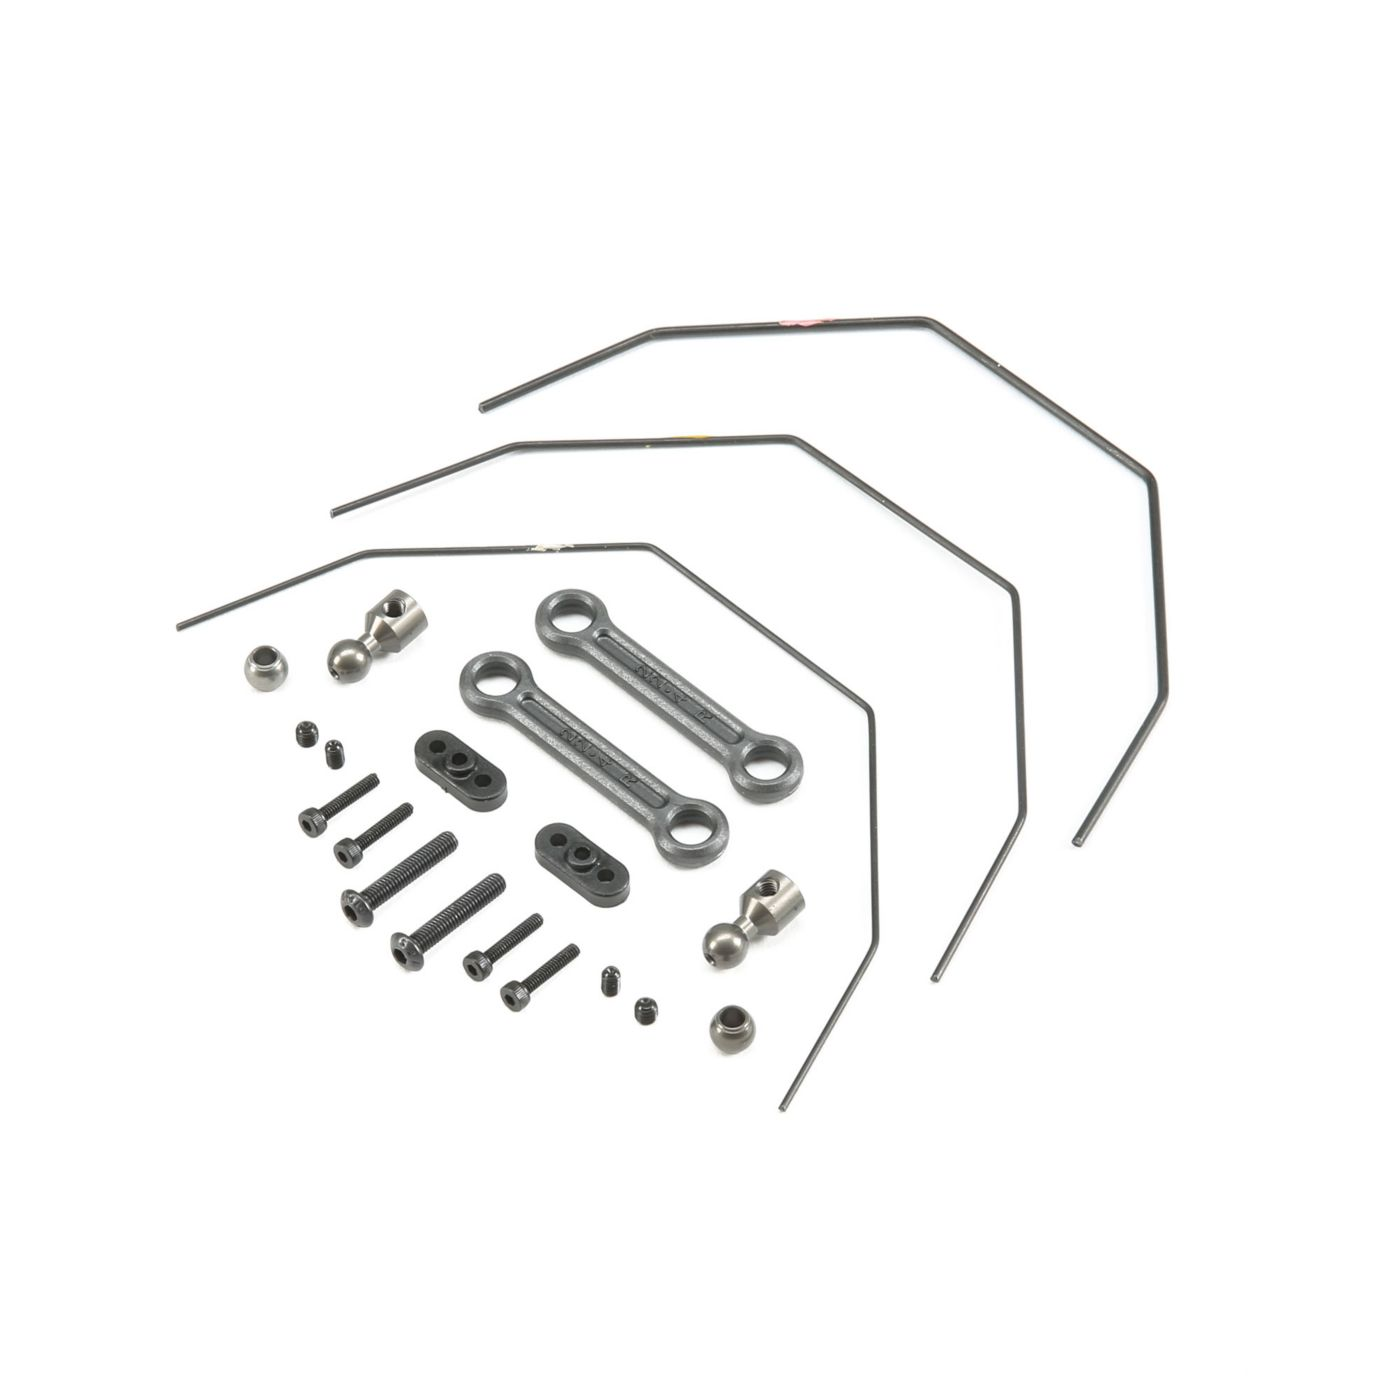 small resolution of image for rear sway bar set 22sct 3 0 from horizonhobby